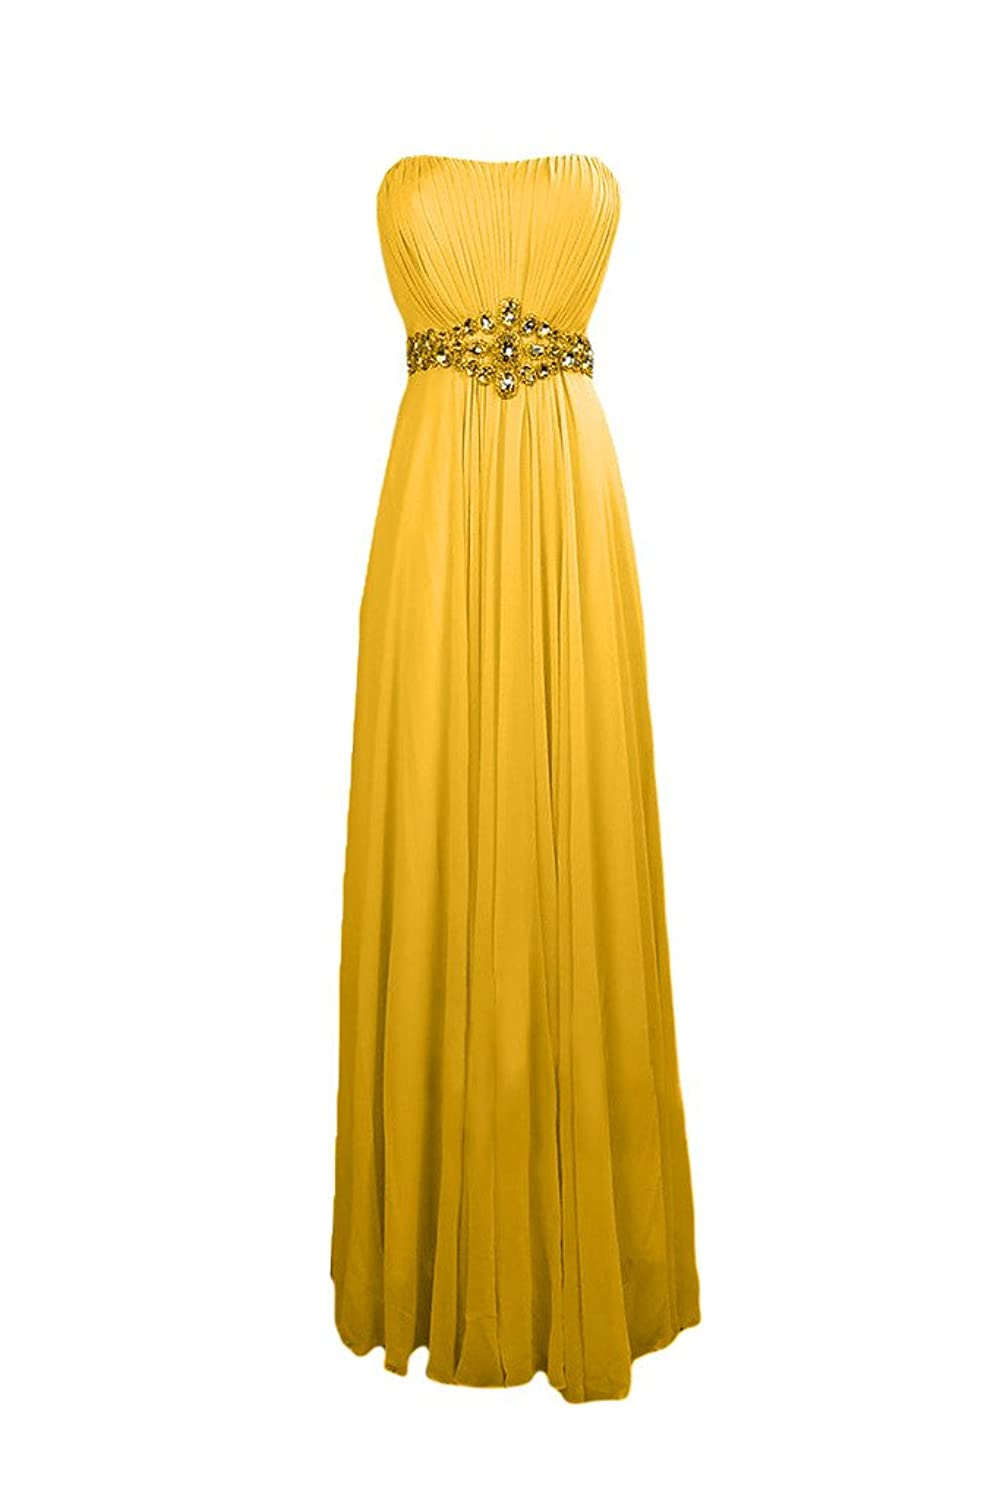 Sunvary Elegant Chiffon Long A-line Strapless Evening Prom Dresses